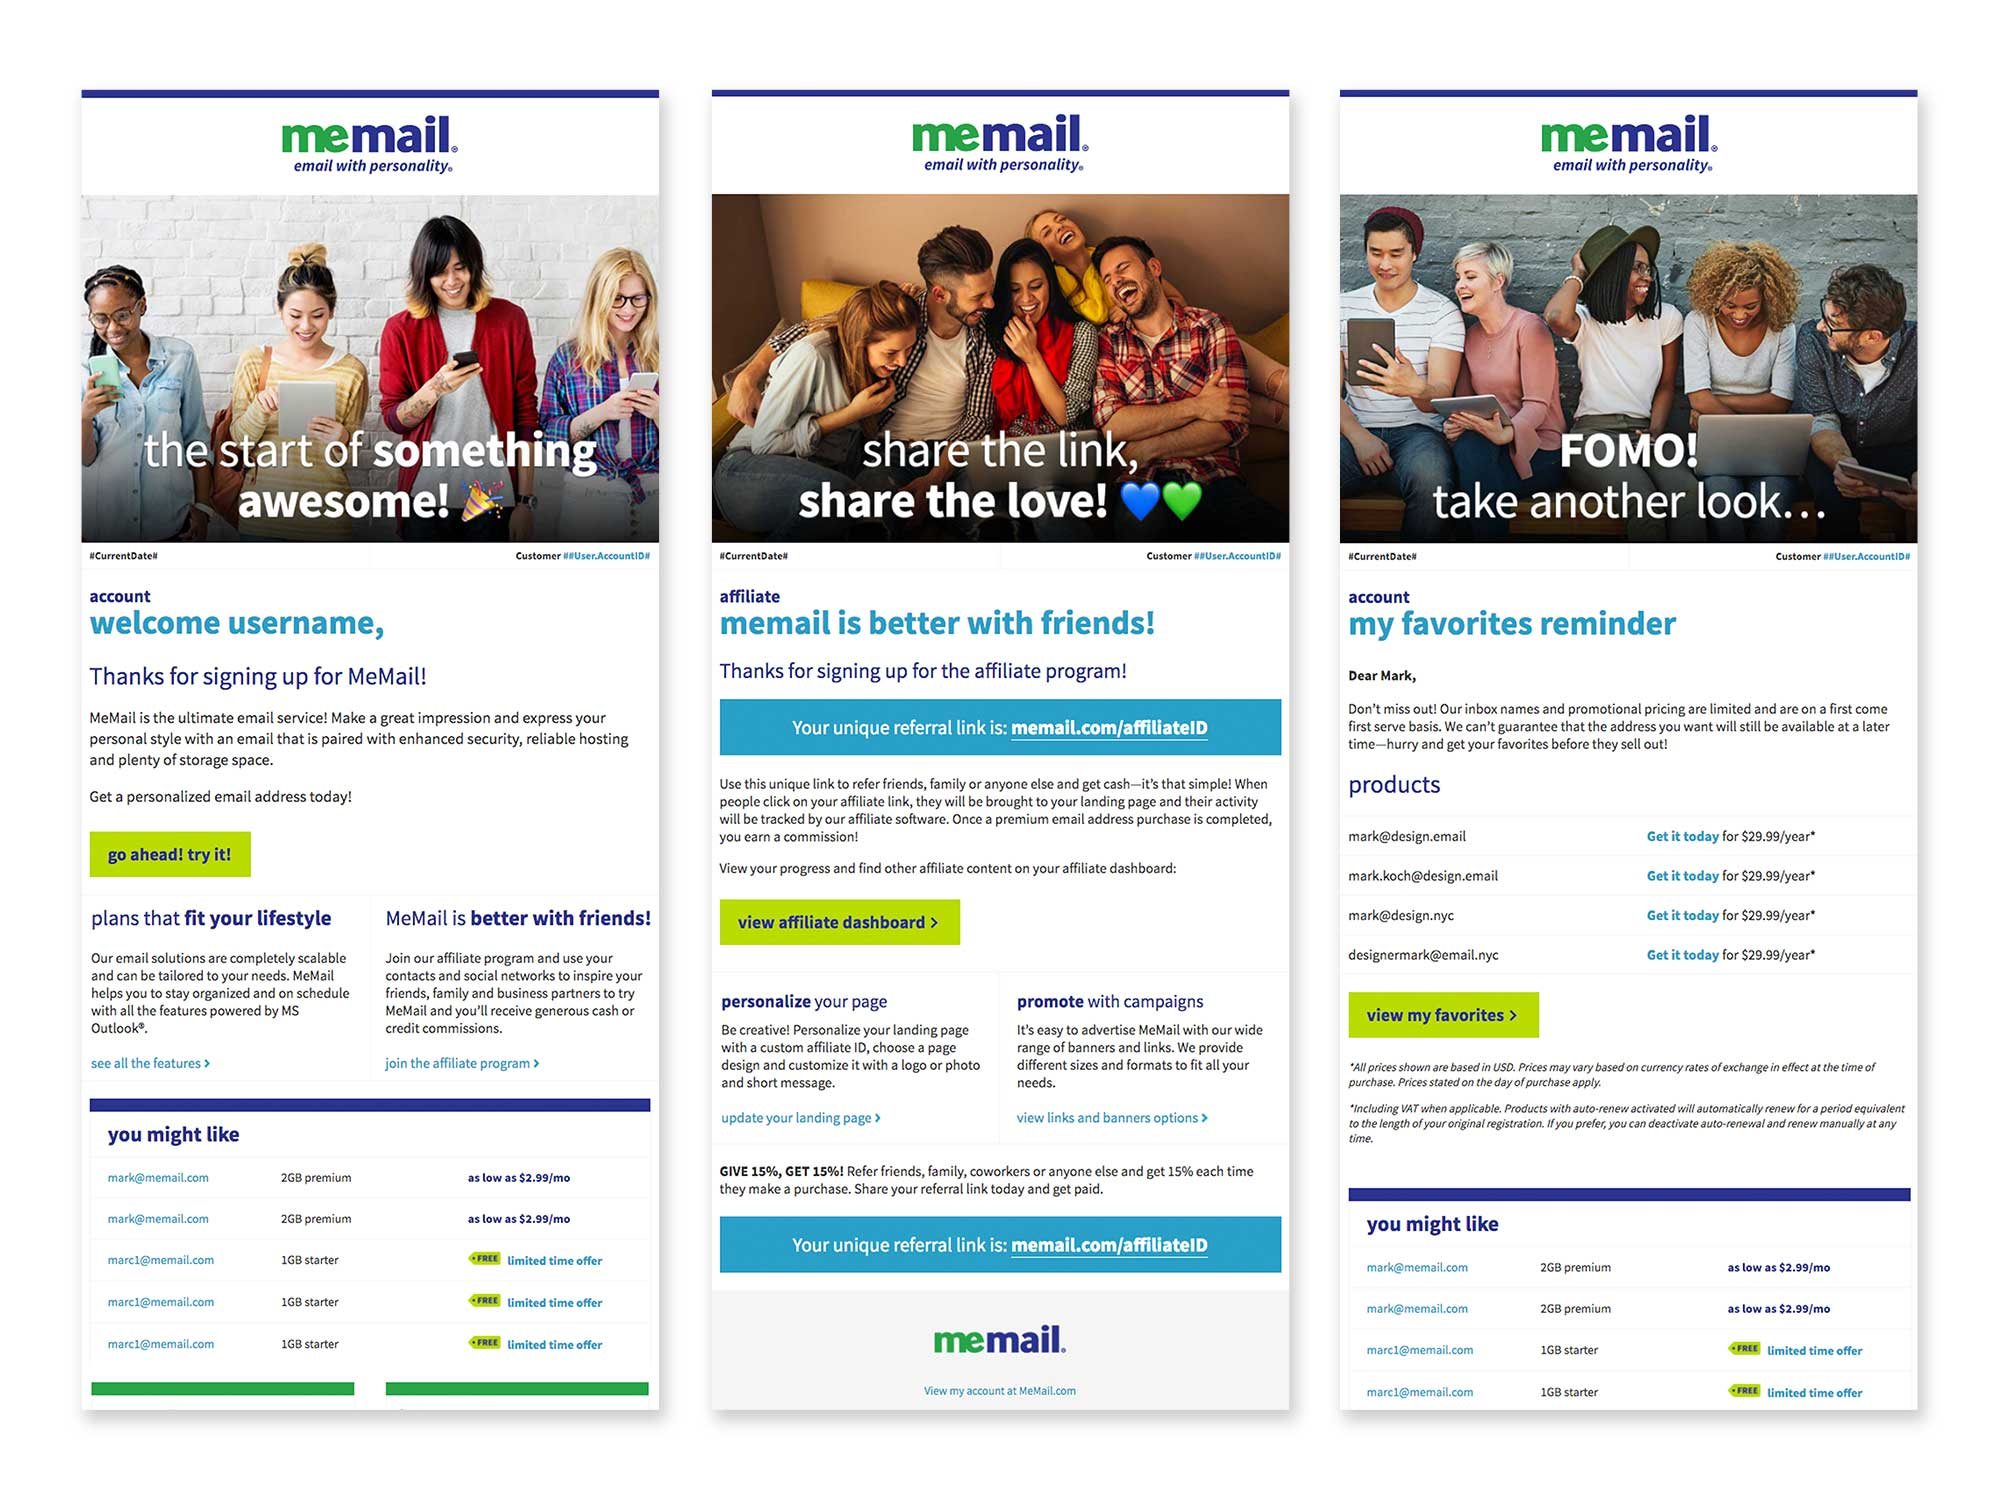 MeMail's fun personality and brand voice are translated into email newsletters and transactional, direct and trigger emails designed to educate consumers about the platform and encourage engagement.